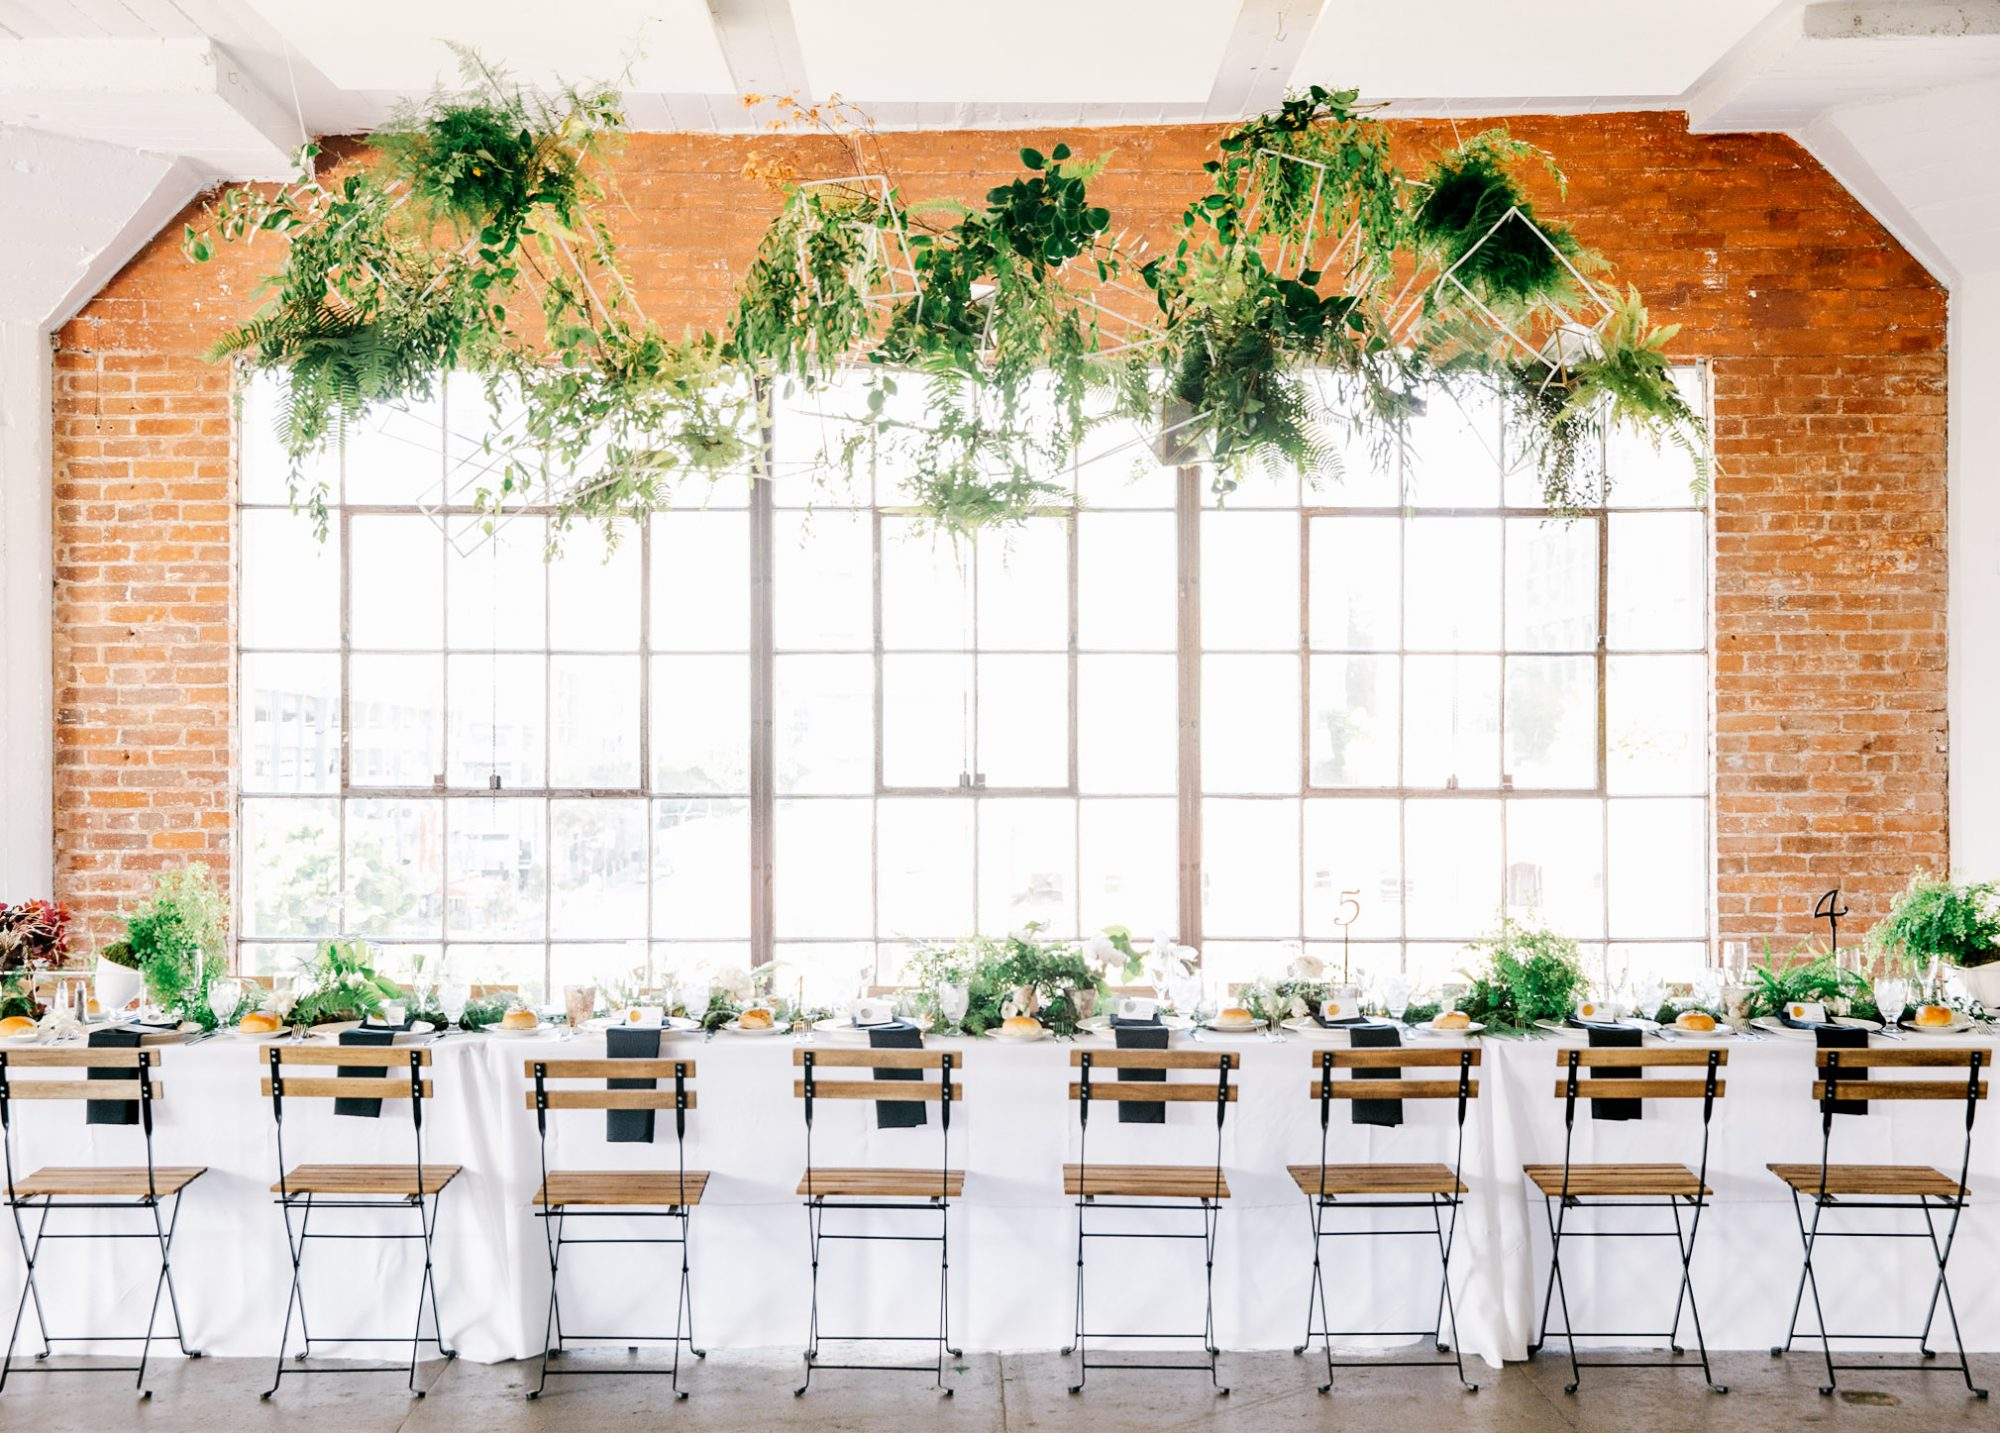 table chairs event space